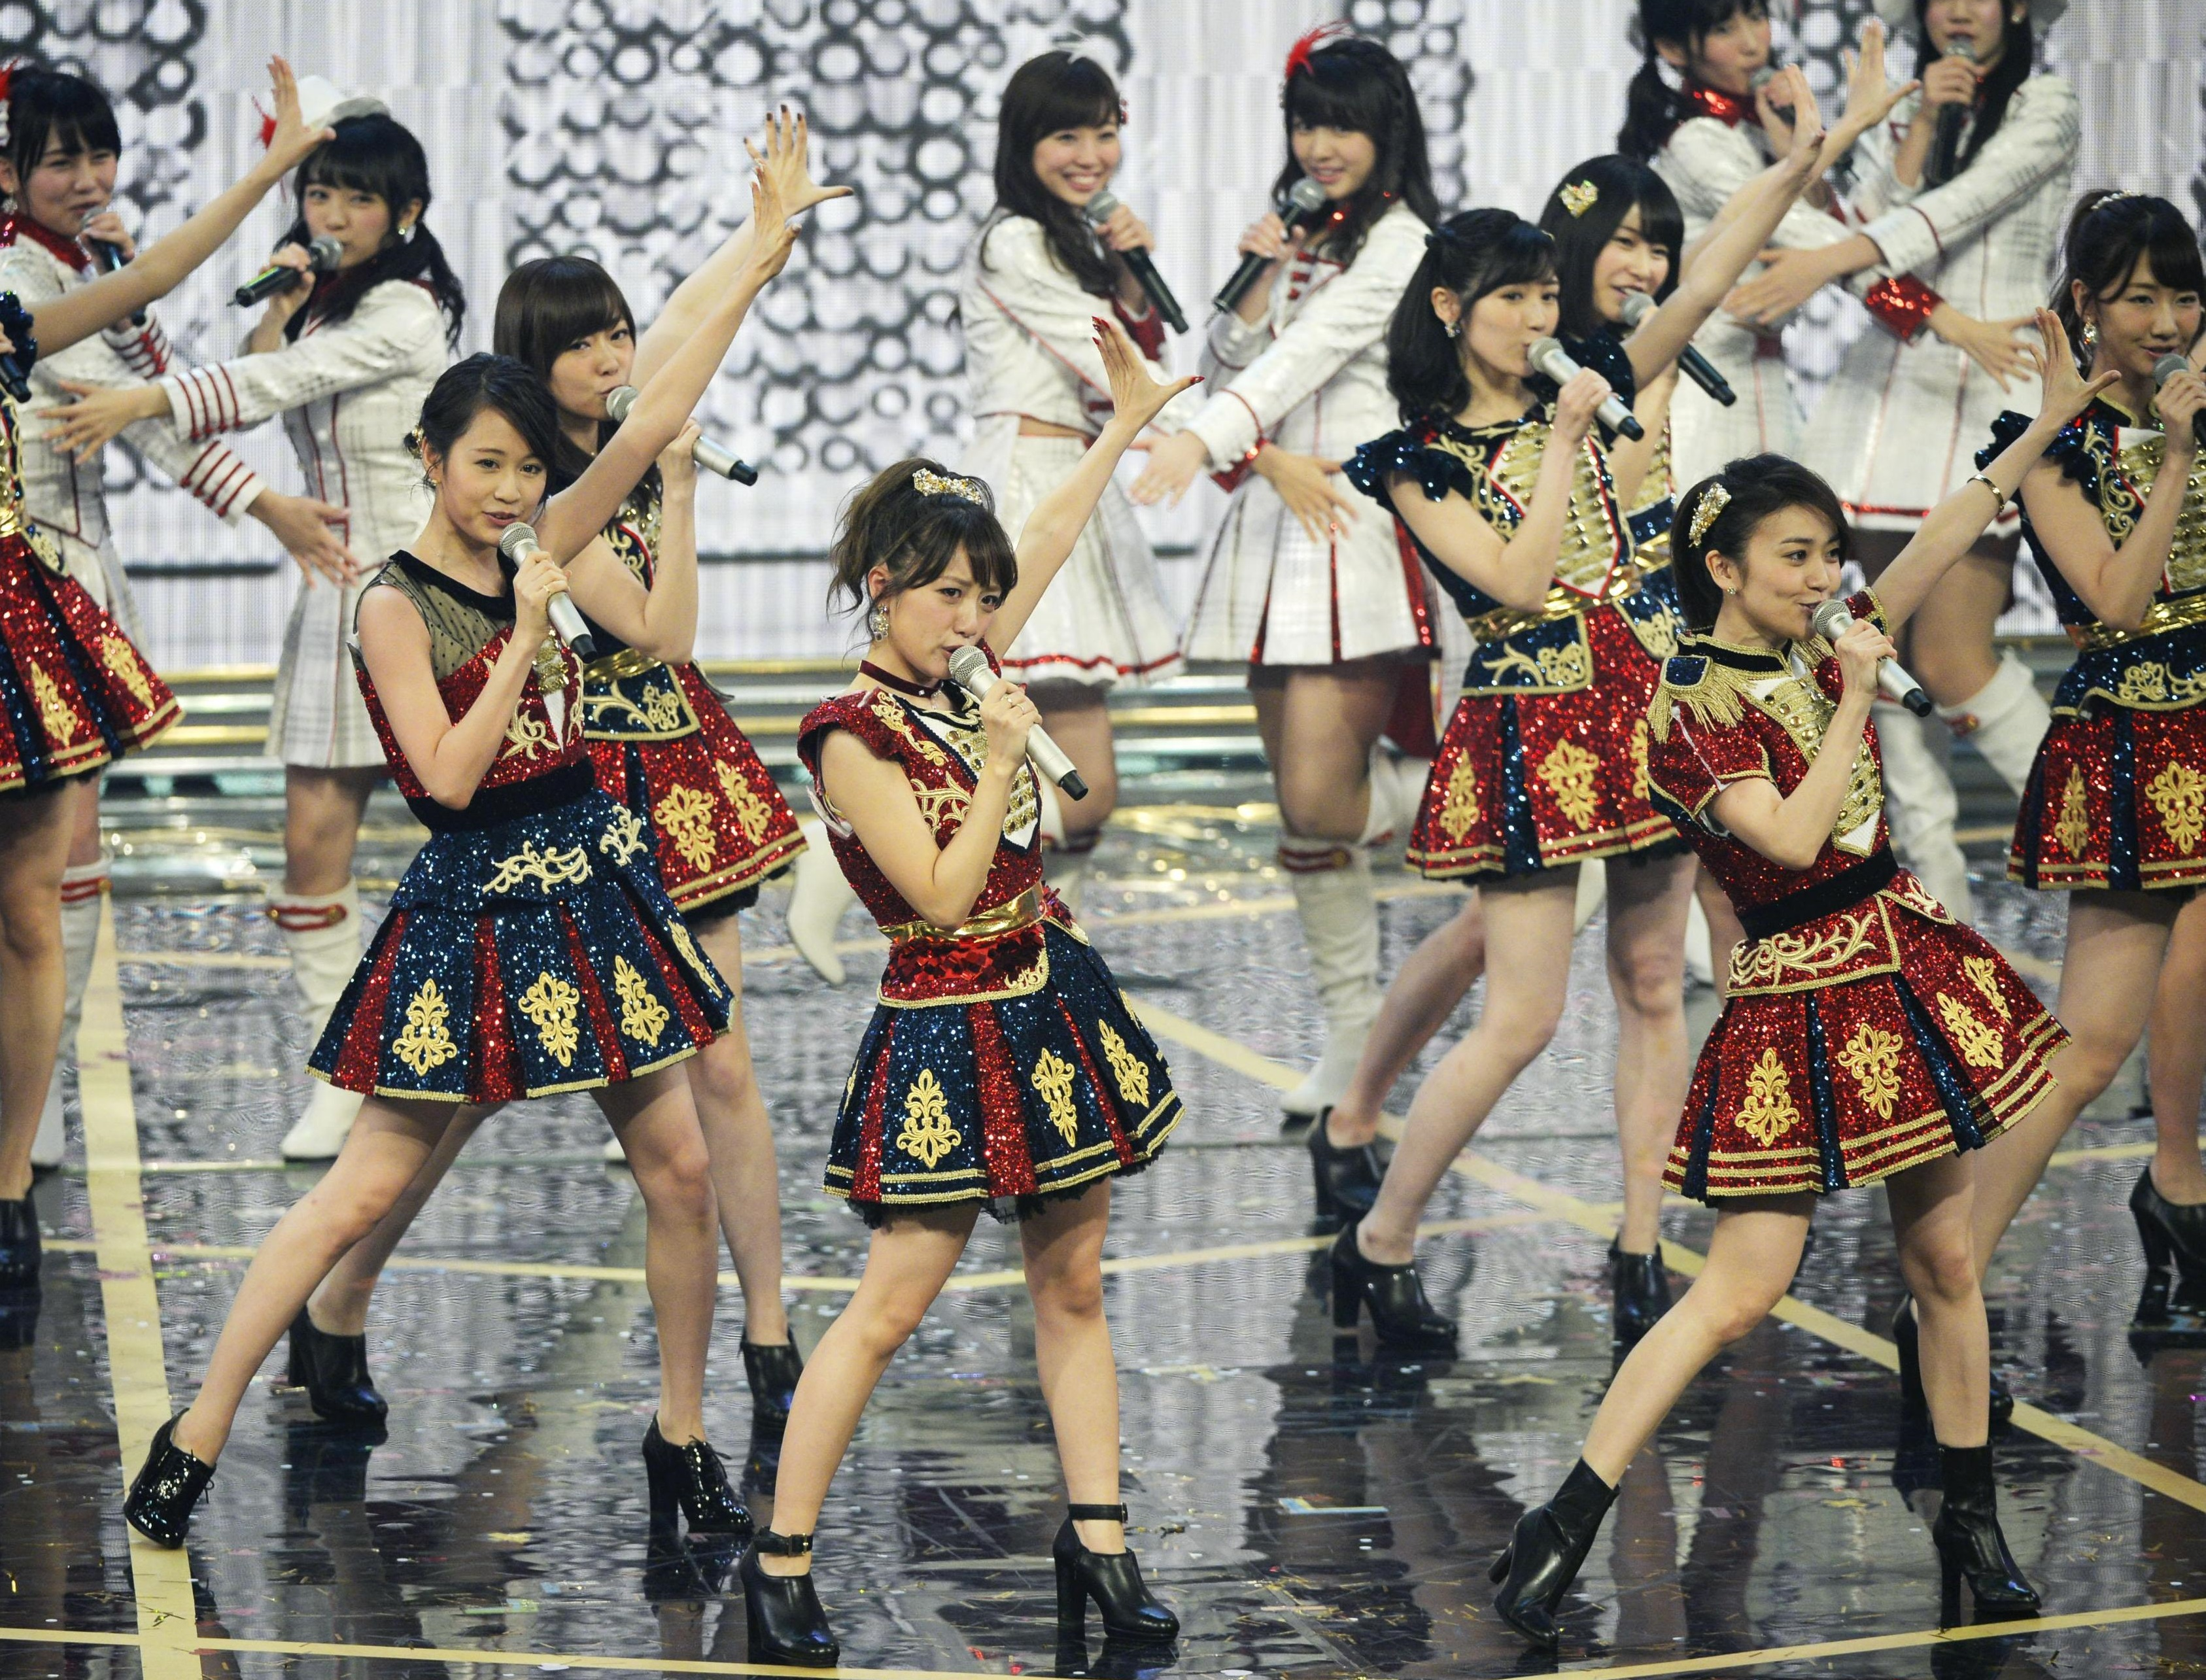 Idol group AKB48 performs during NHK's annual 'Kohaku' music competition on Thursday. Viewership during the end-of-the-year TV show plummeted to an all-time low of 39.2 percent. | KYODO